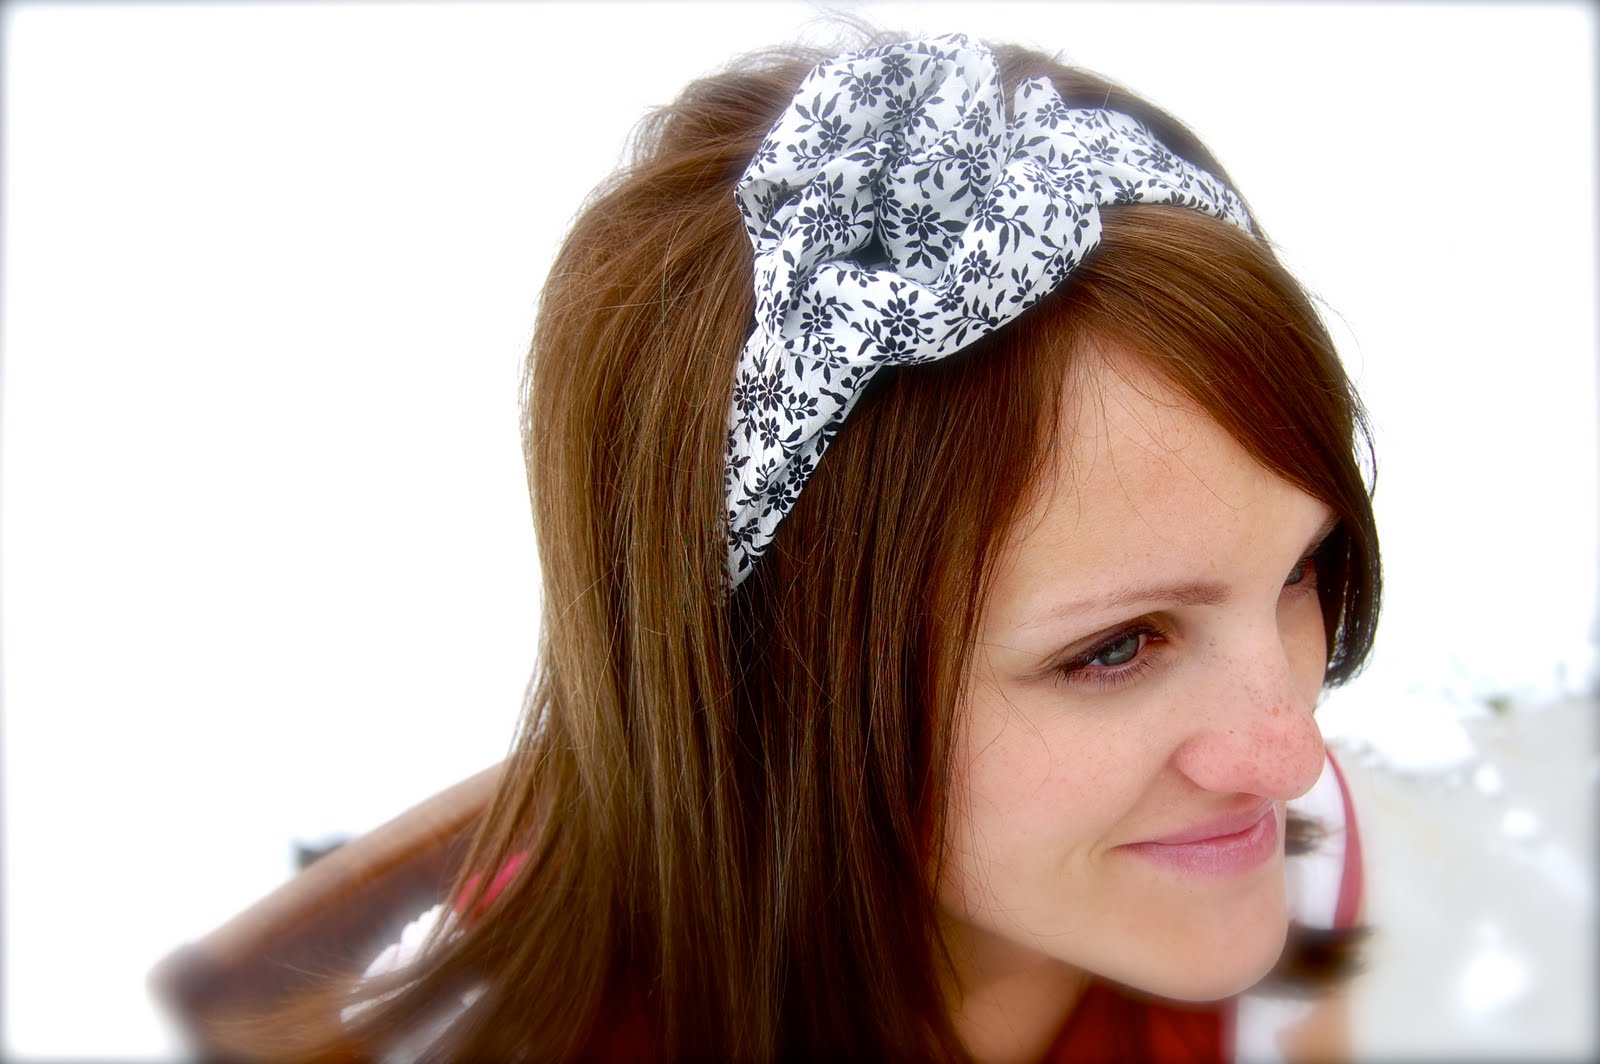 That S So Cuegly Fabric Headacheless Headbands With Wire